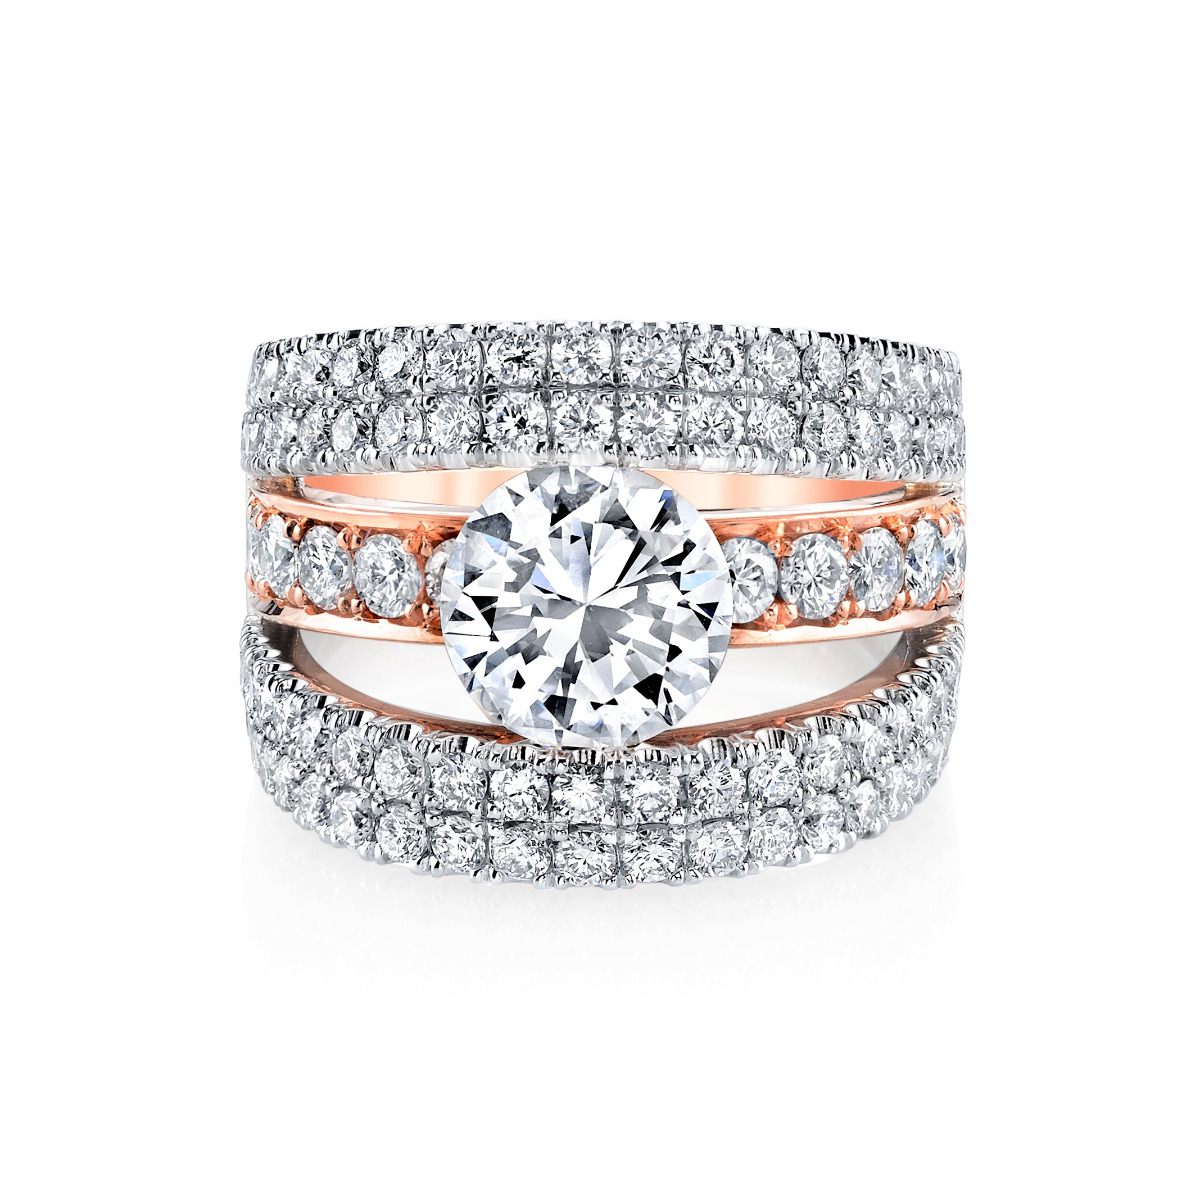 5 Row Pave Tension Set Two Toned Diamond Engagement Ring